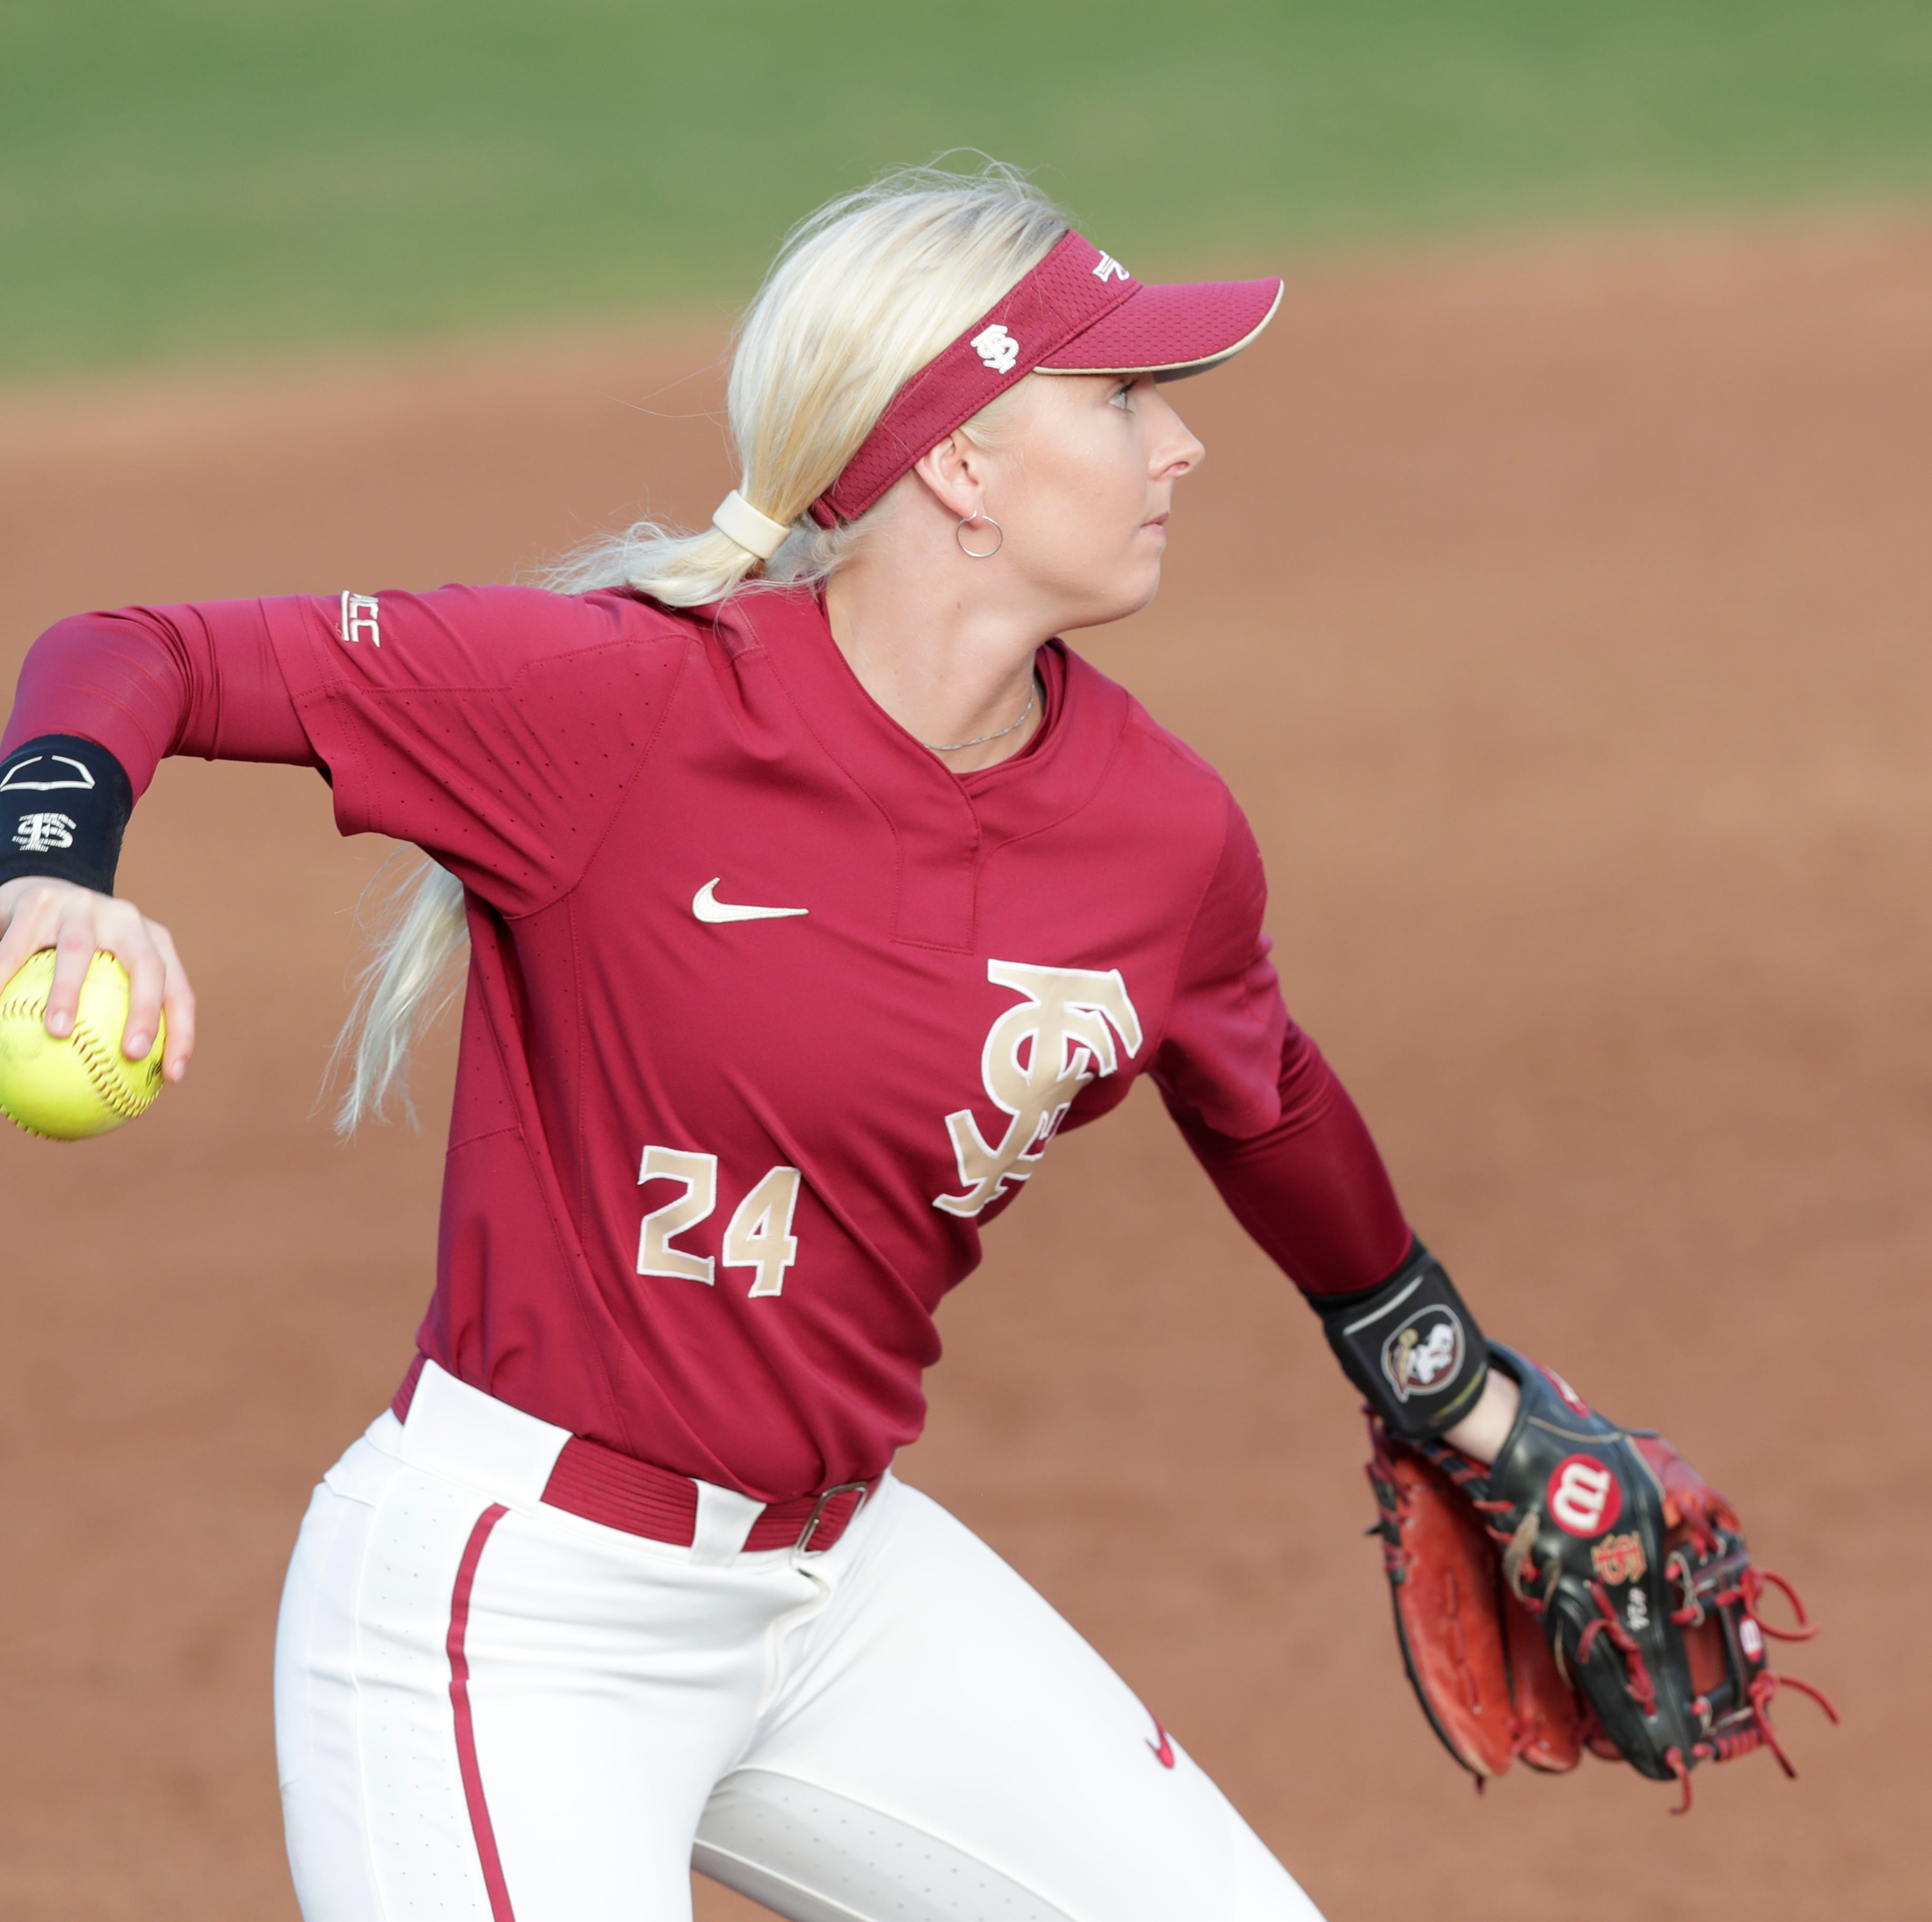 Florida State set to host 2019 ACC Softball Championship